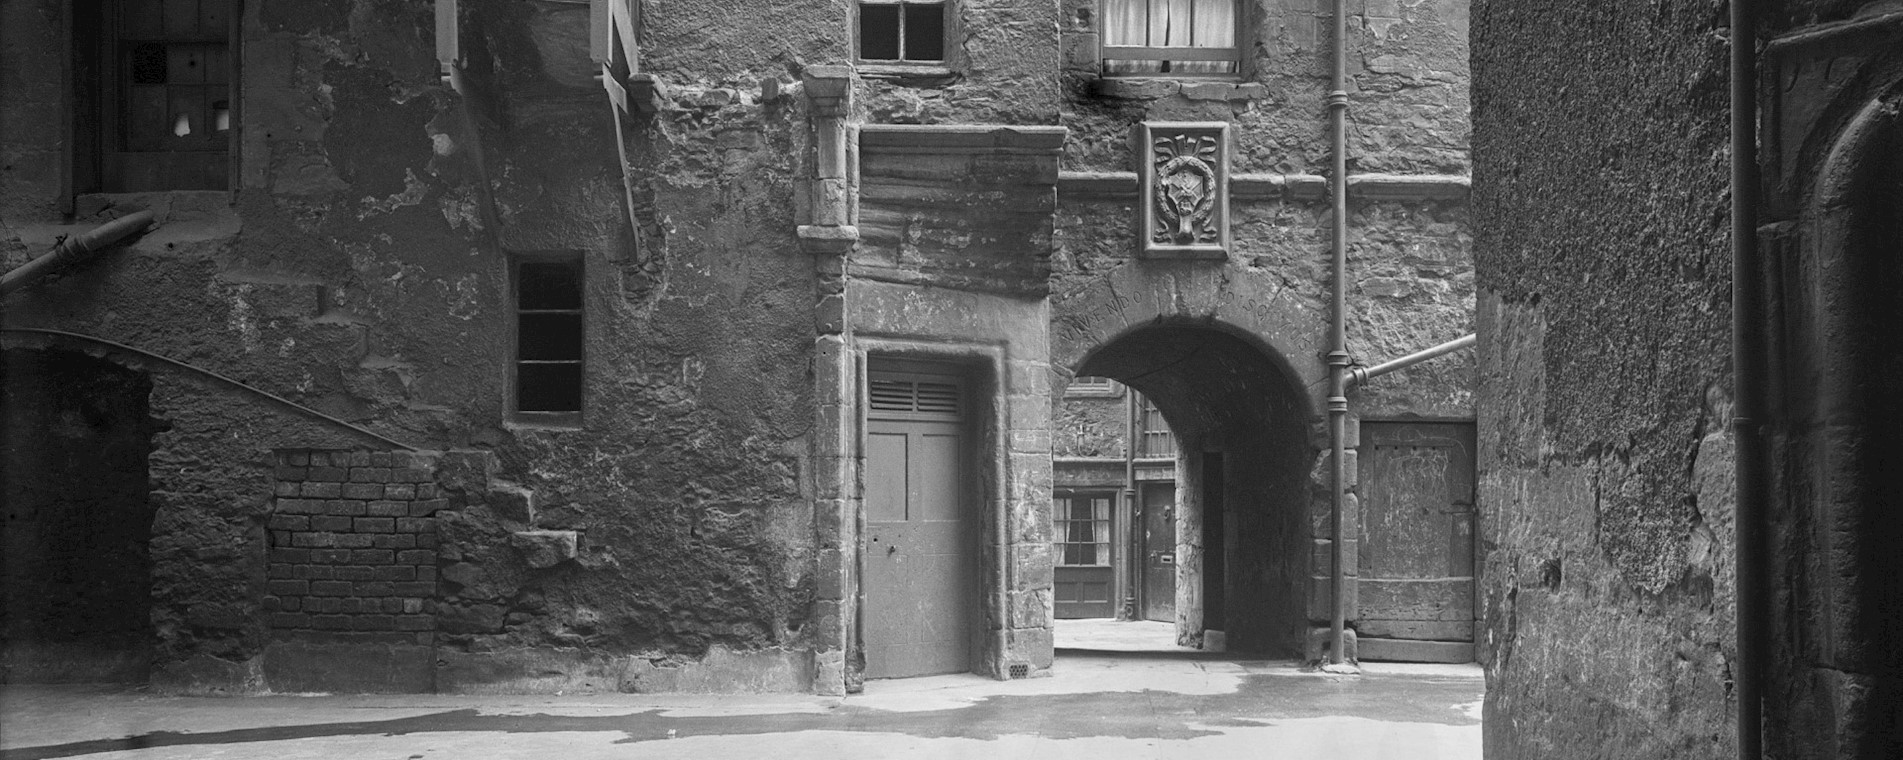 Riddles Close towards Riddle's Court - 1930 ©HES